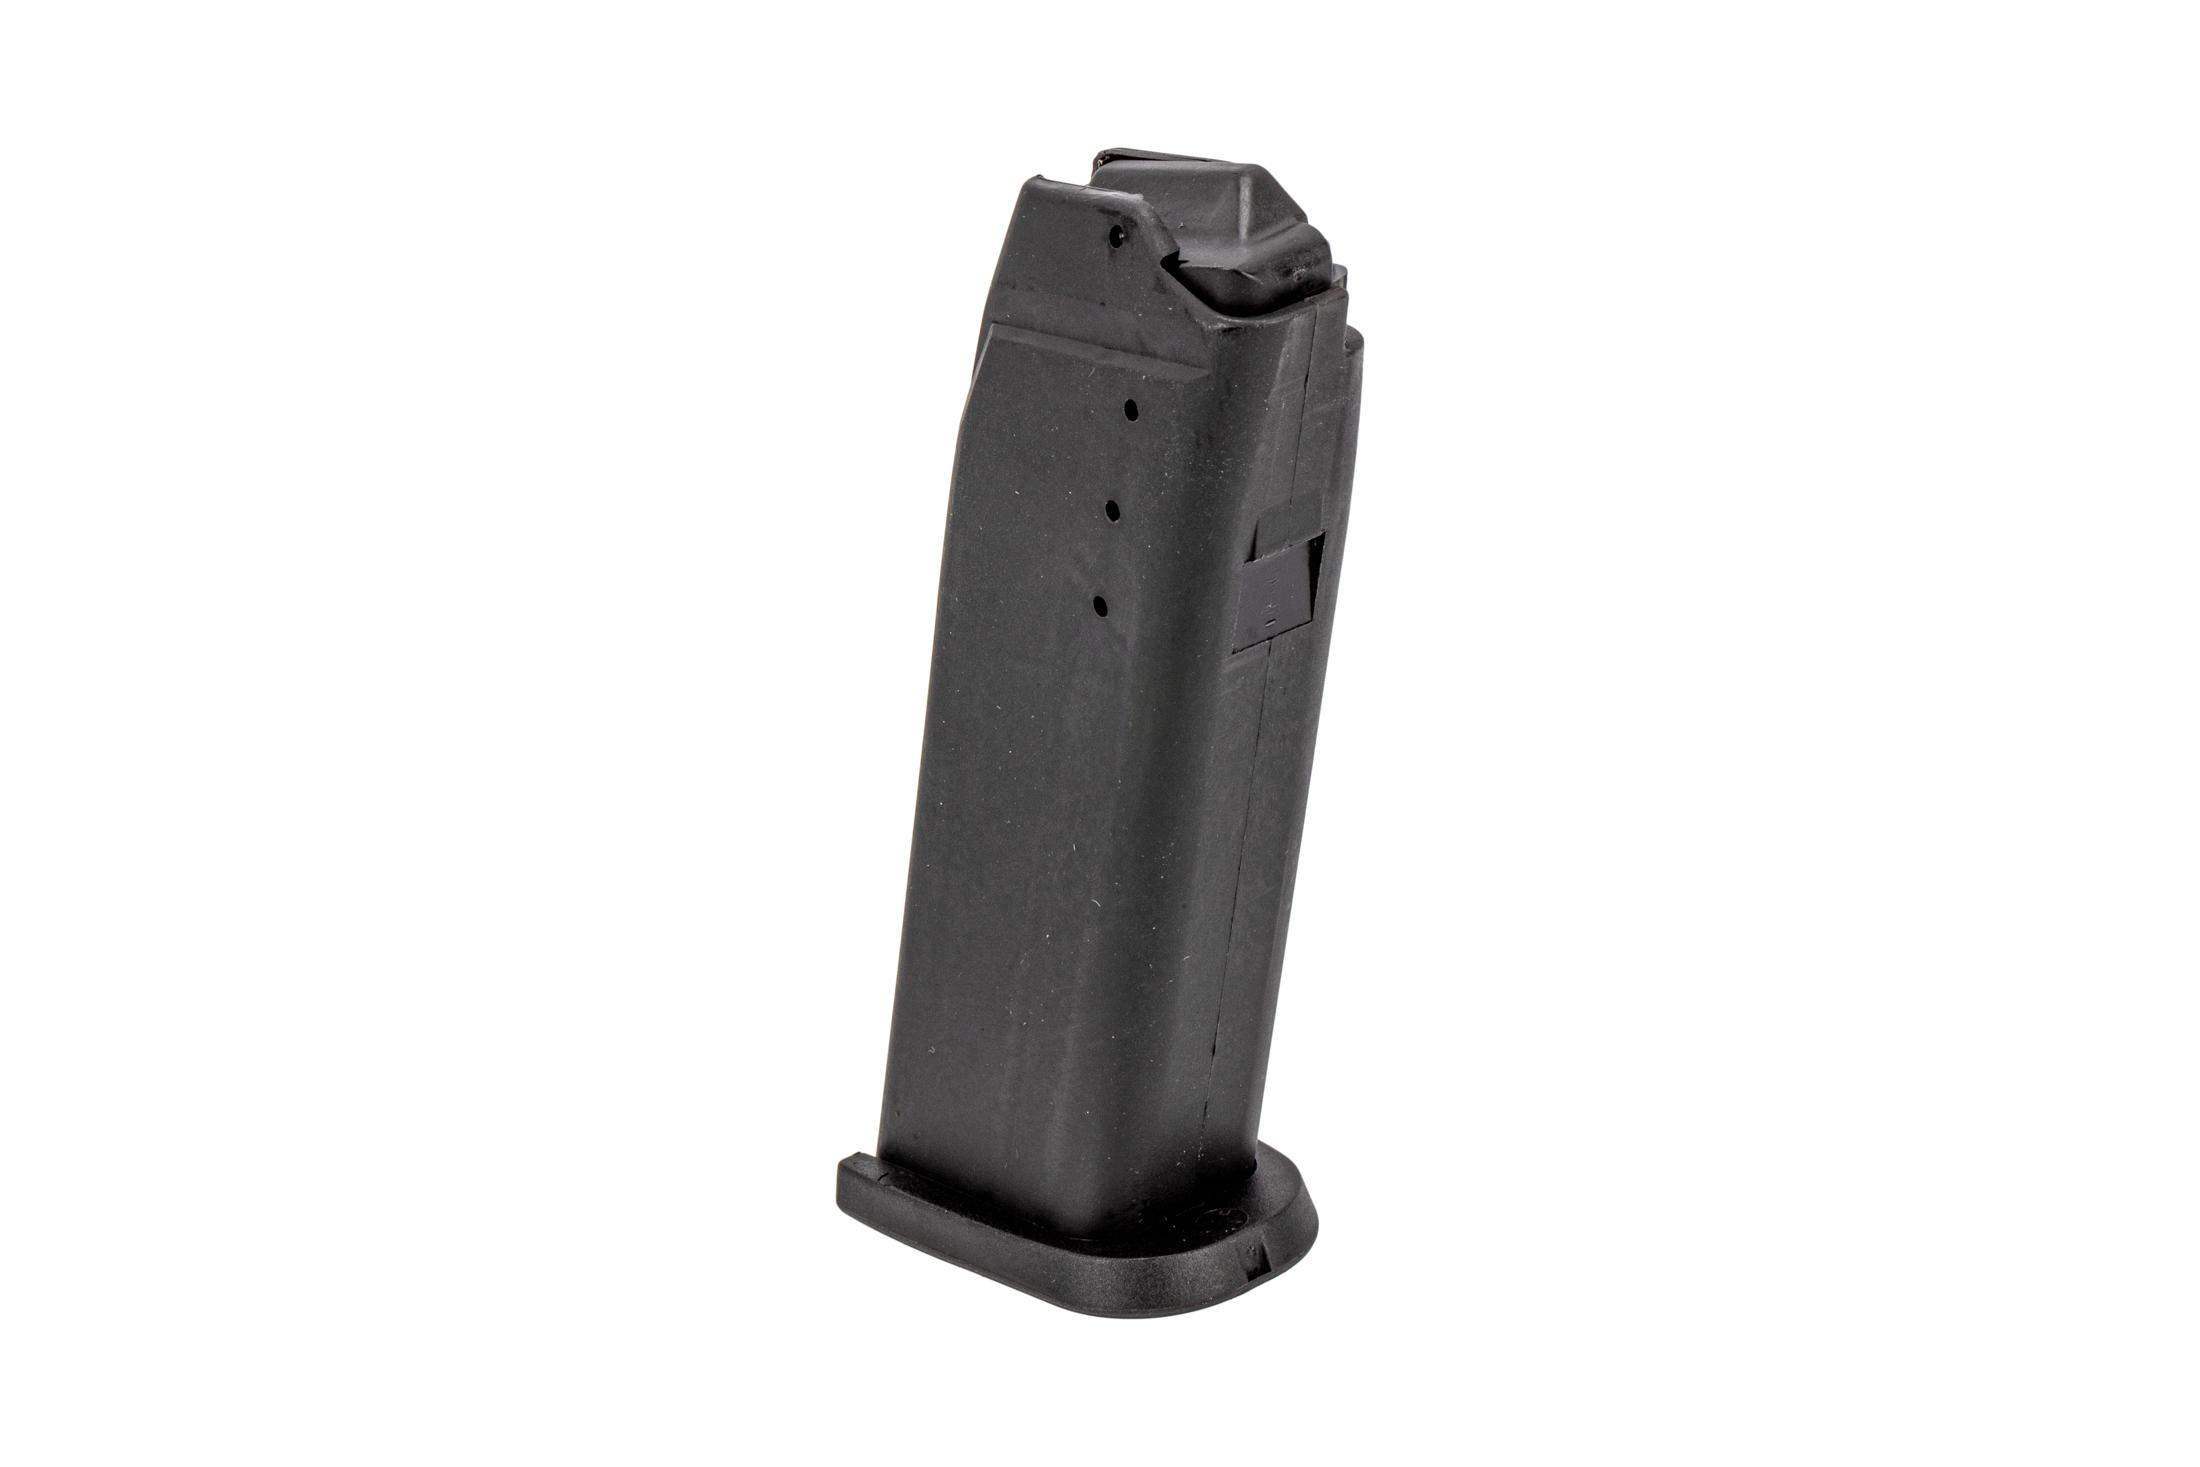 The Heckler and Koch VP9SK magazine is made from stainless steel and holds 15 rounds of 9mm ammo